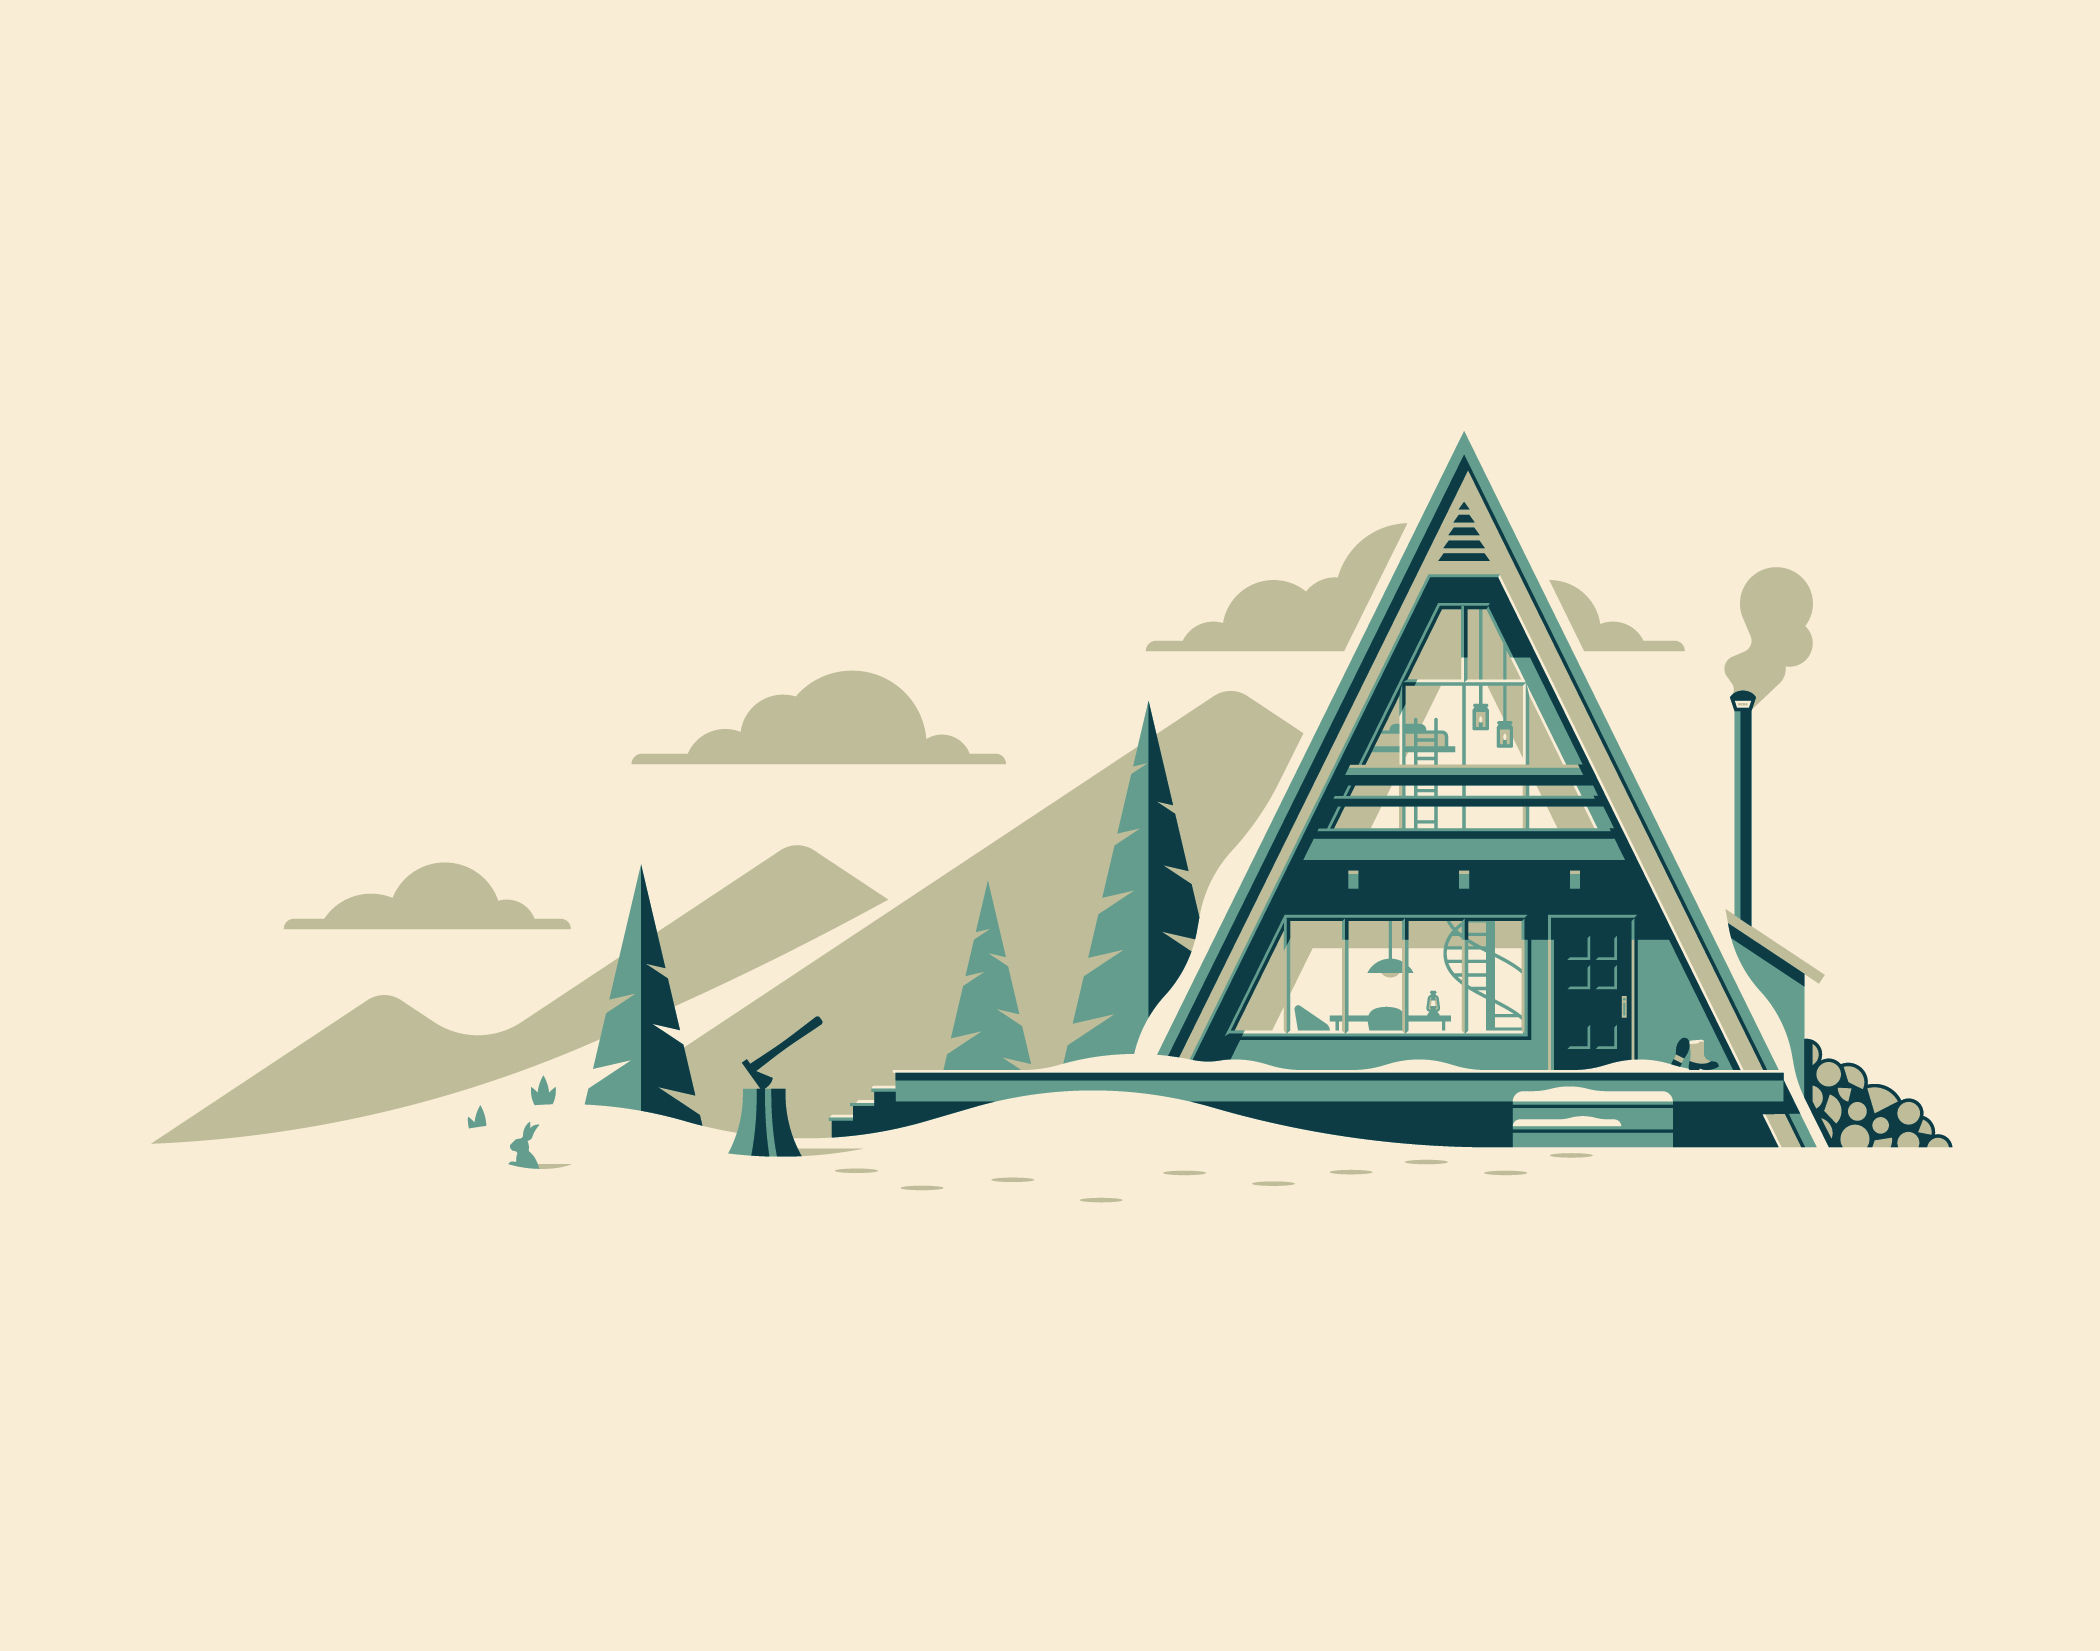 a-frame_cabin_seps_trapped-01.jpg